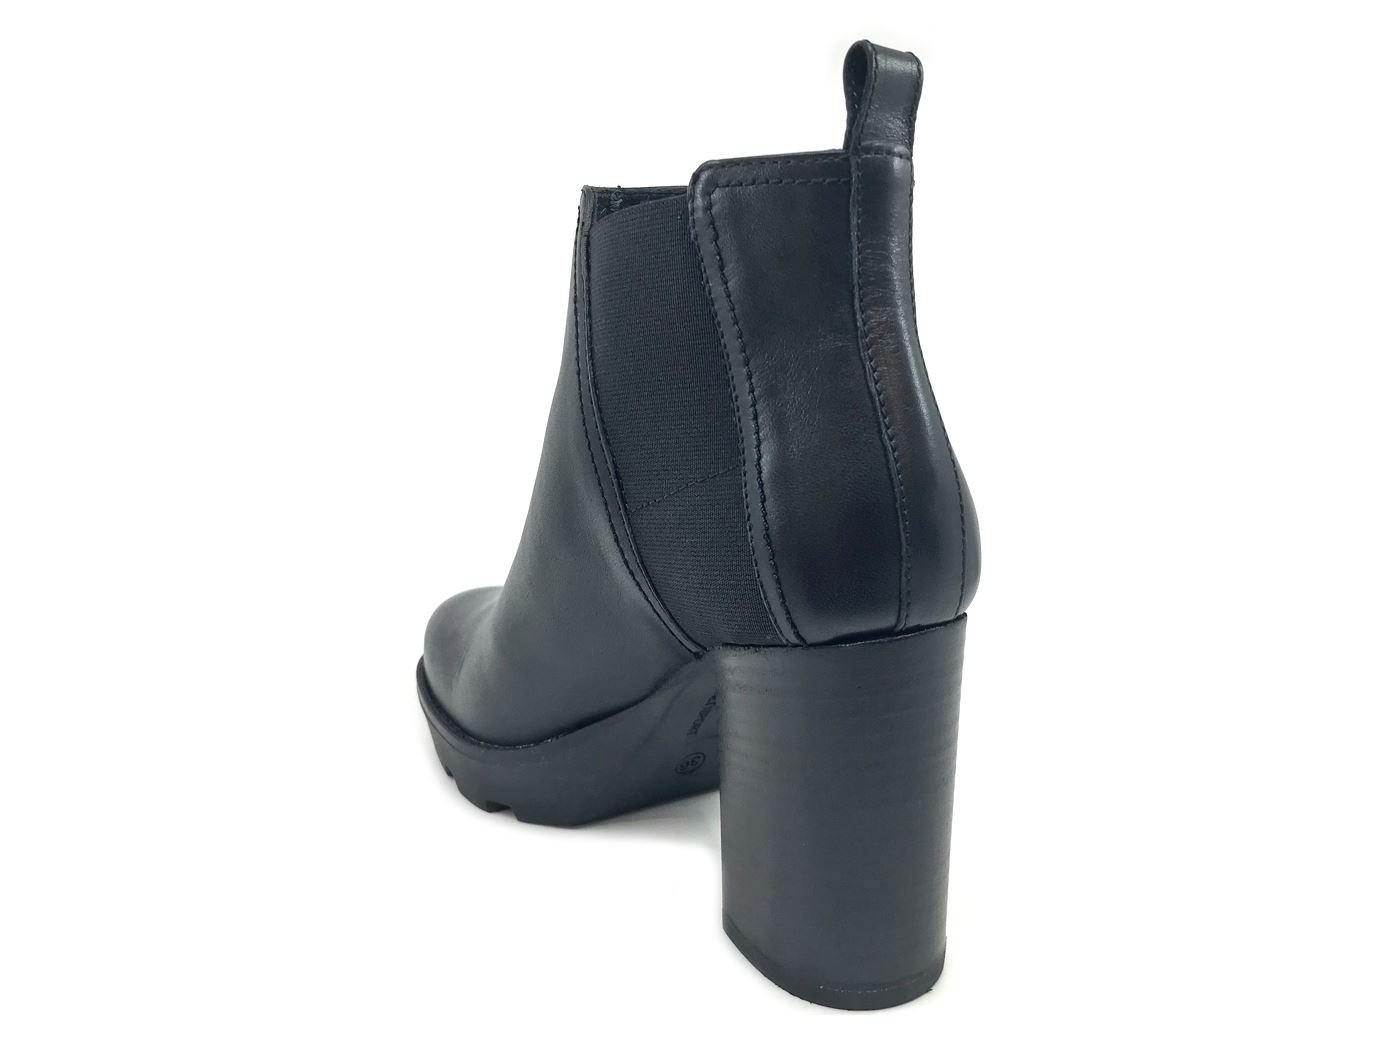 JANET SPORT 42827 NERA STIVALETTO DONNA IN PELLE NERA 42827 MainApps be4c4d